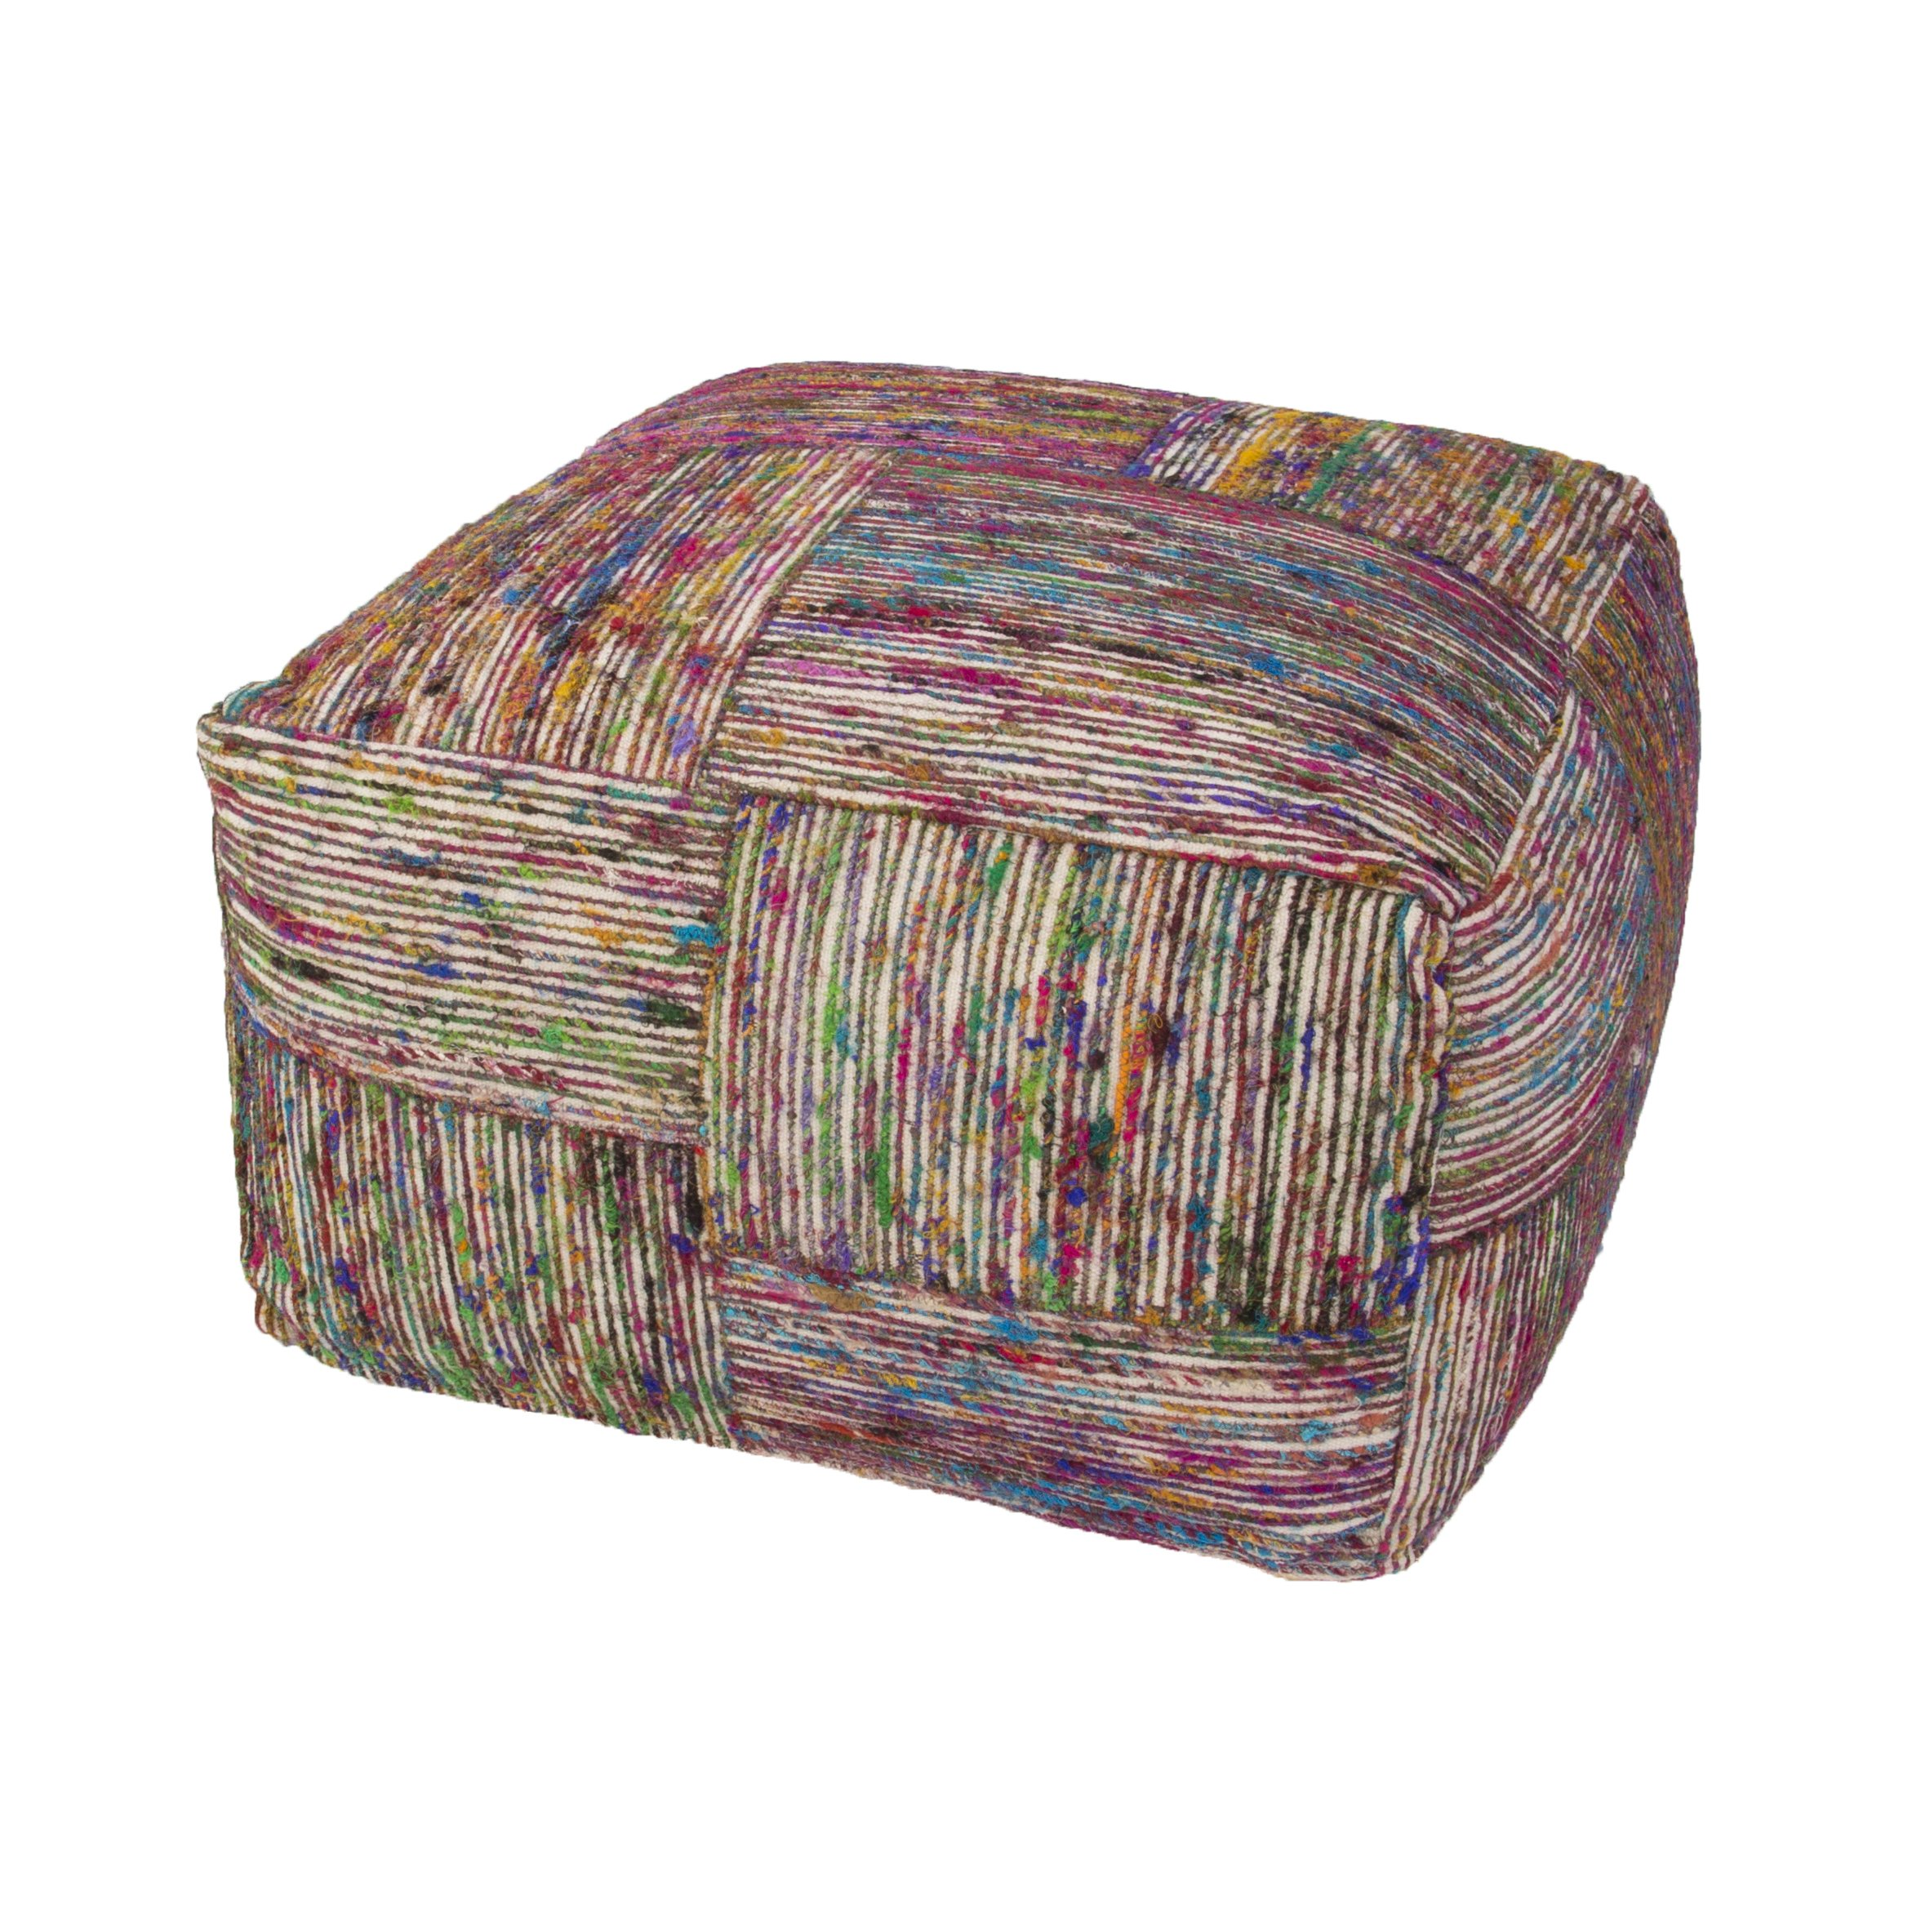 Jaipur Textural Pattern Multi Recycled Pouf, 22-Inch x 22-Inch x 13-Inch, Swan White Silk Block